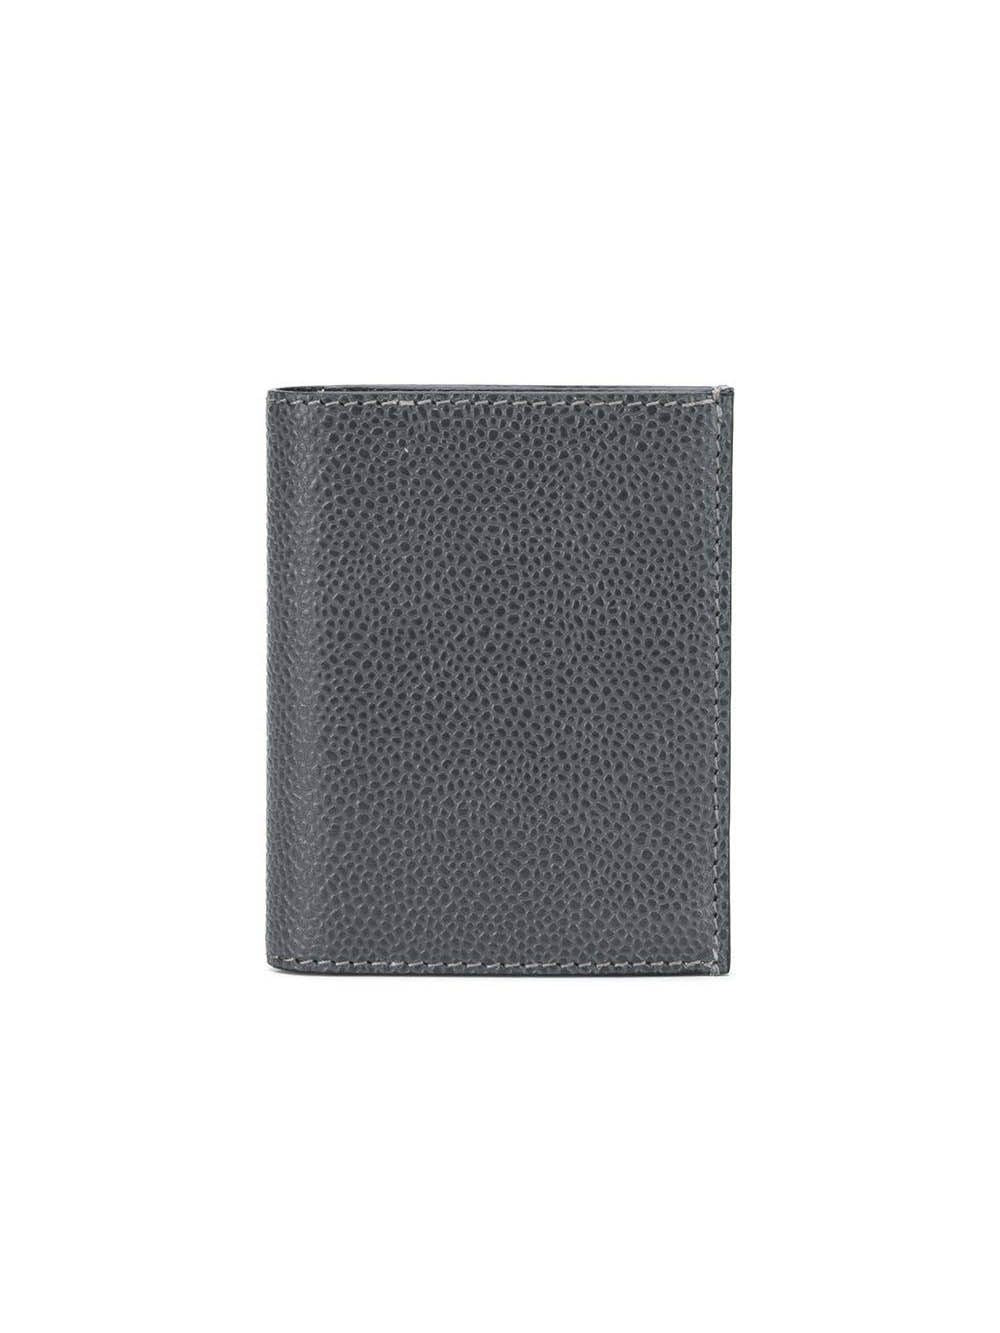 Grey Leather Double Card Holder